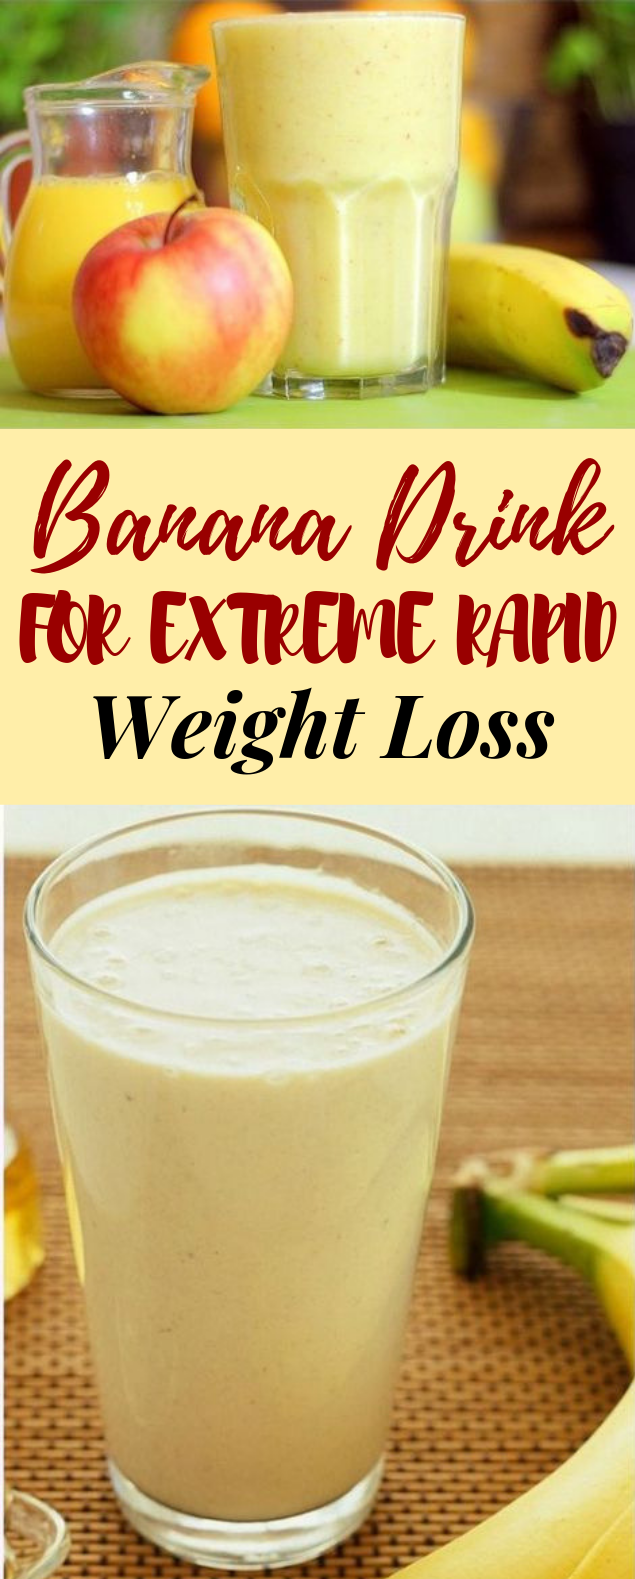 Banana Drink for Extreme Rapid Weight Loss